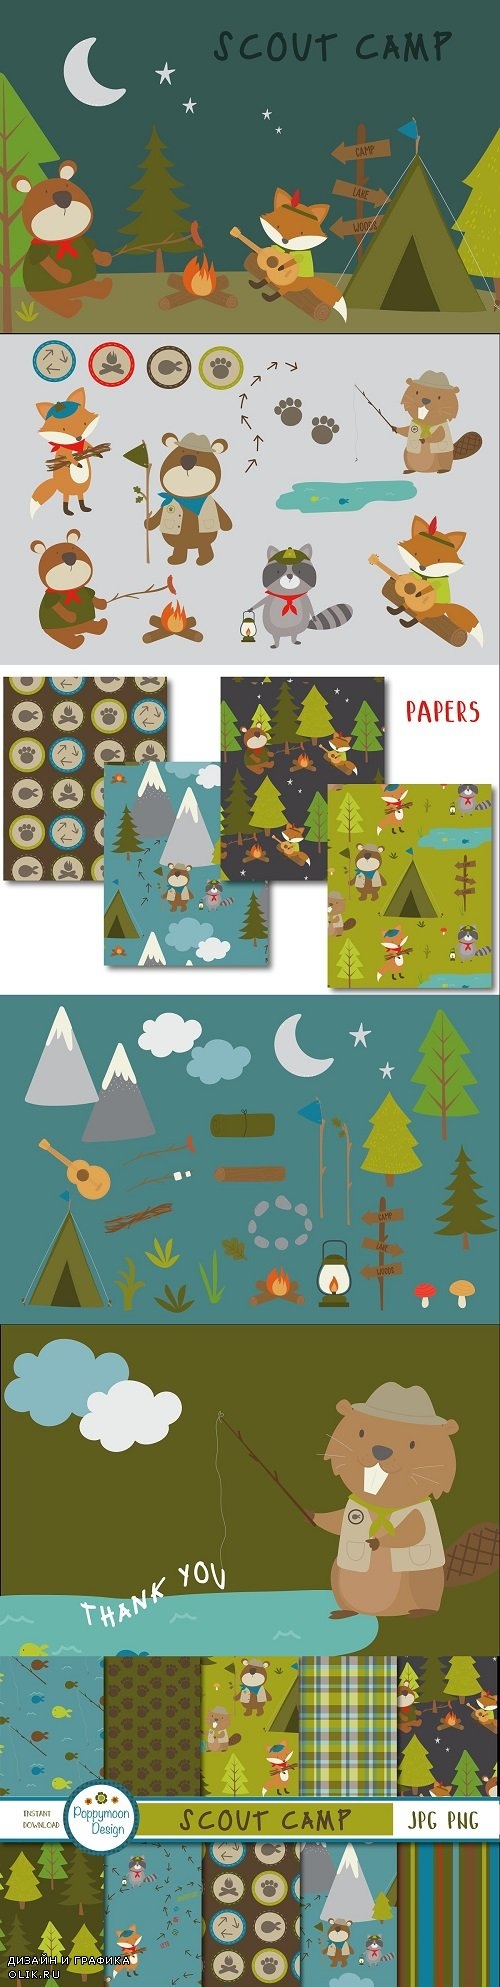 Scout Camp Clipart and Paper - 4239672